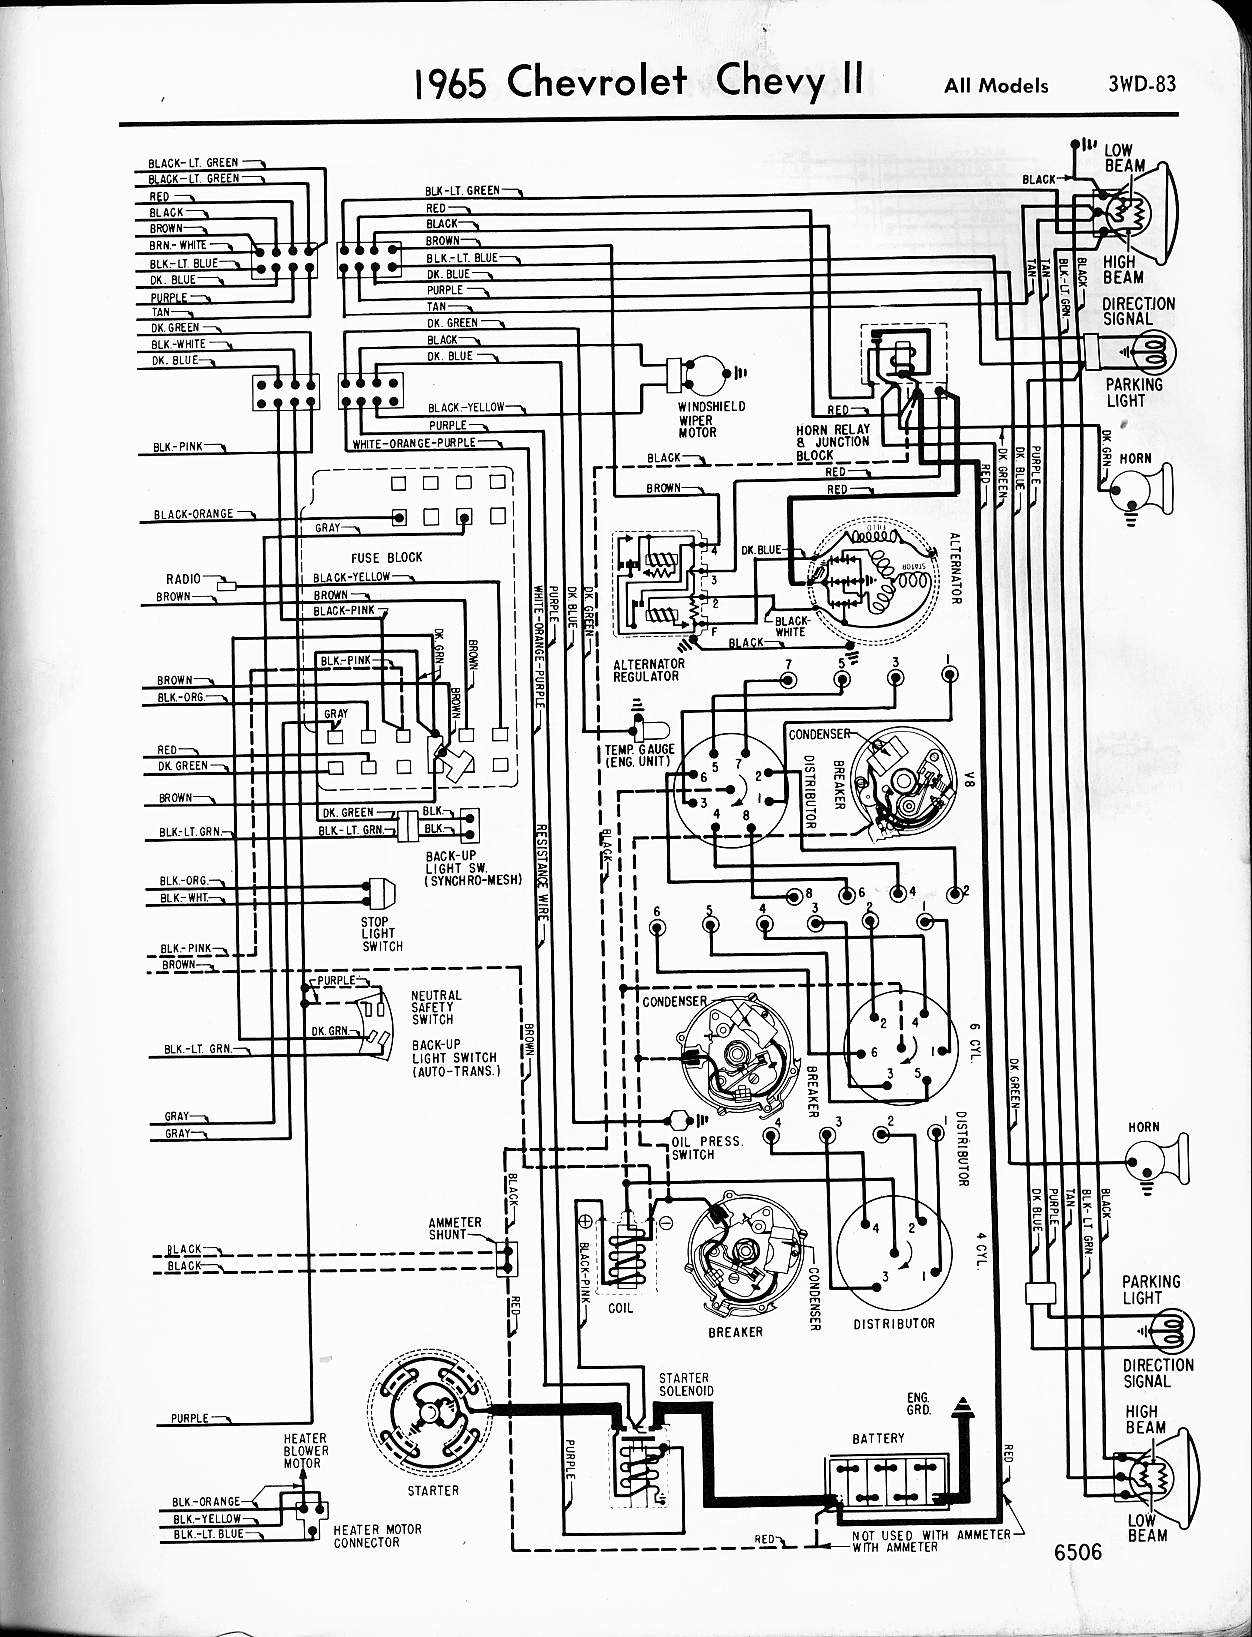 57 - 65 Chevy Wiring Diagrams V Chevy Engine Wiring Diagram on